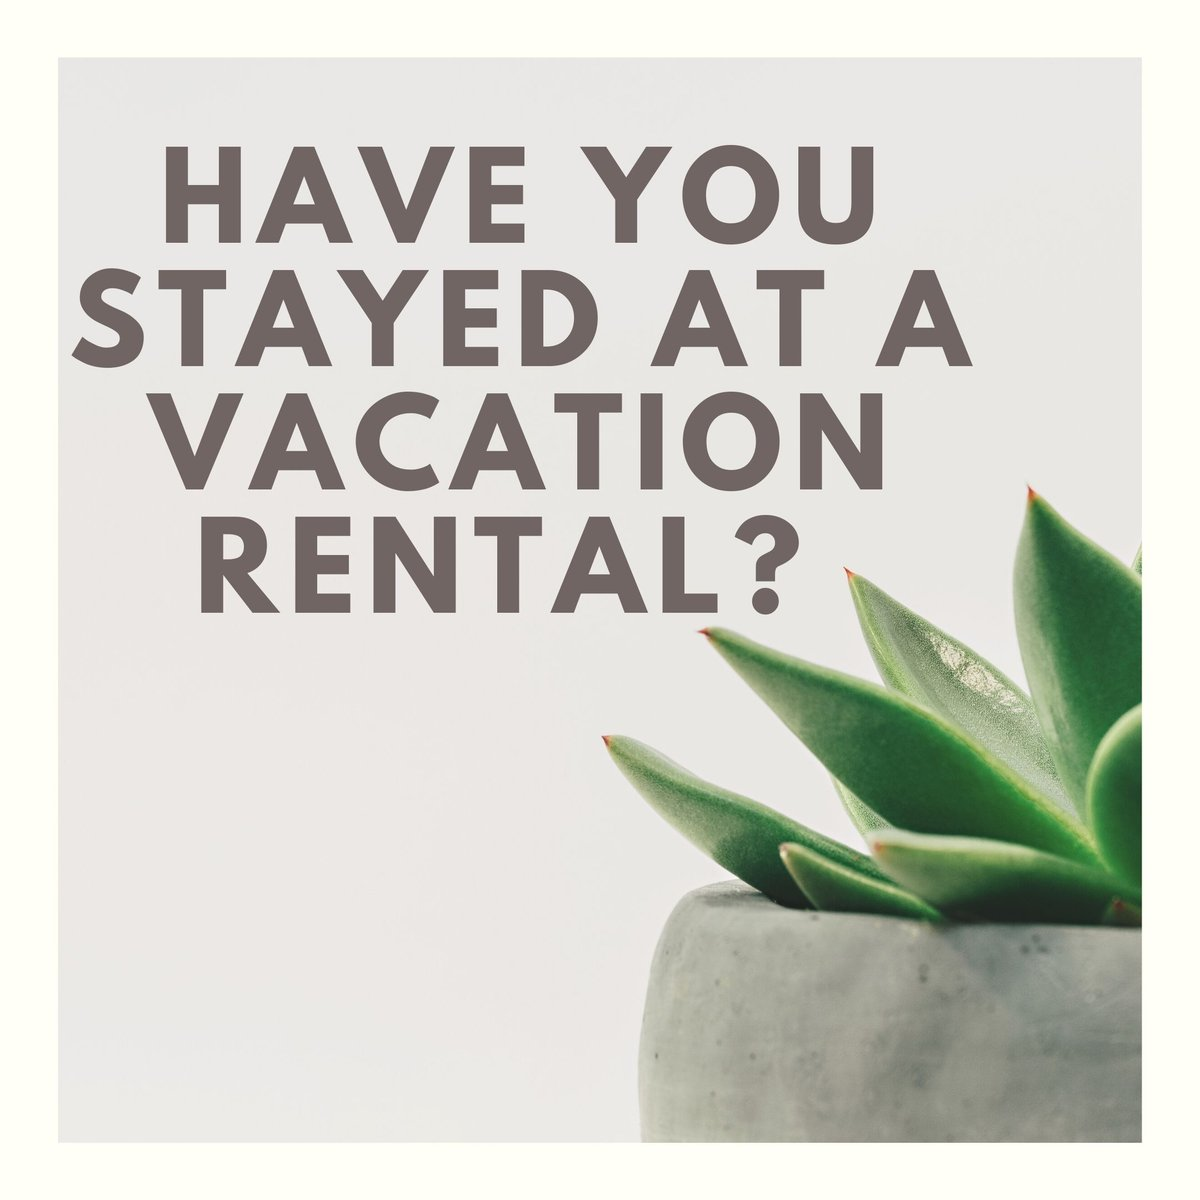 Have you stayed with us here at Barefoot Vacation Rentals? If so, let us know which house you stayed and what you liked about it? #friday #adventureseeker #travelbloggers #instatemecula #adventureislife #instawinery #postcardsfromtheworld #luxuryholiday #temeculacaliforniapic.twitter.com/mOSyyOGTrx